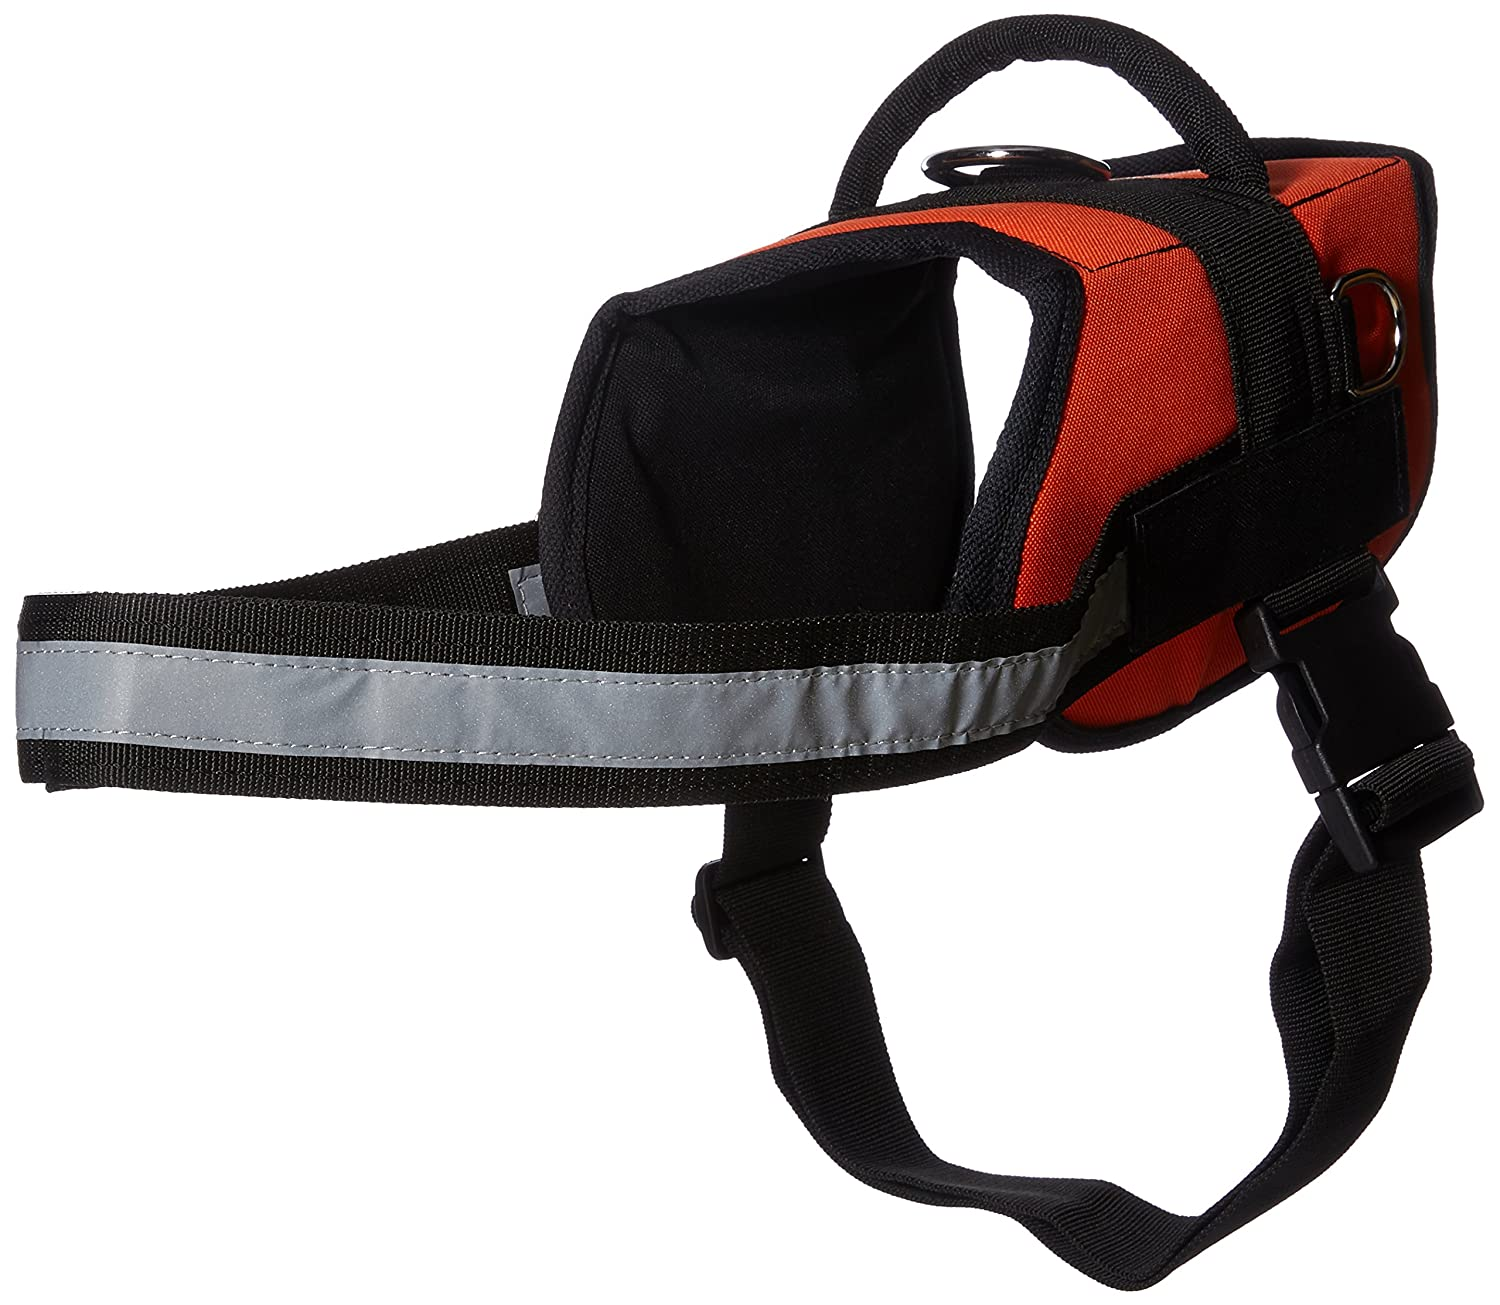 L Dean & Tyler DT Works Deaf Dog Dog Harness, Fits Girth Size 34-Inch to 47-Inch, Large, orange Black